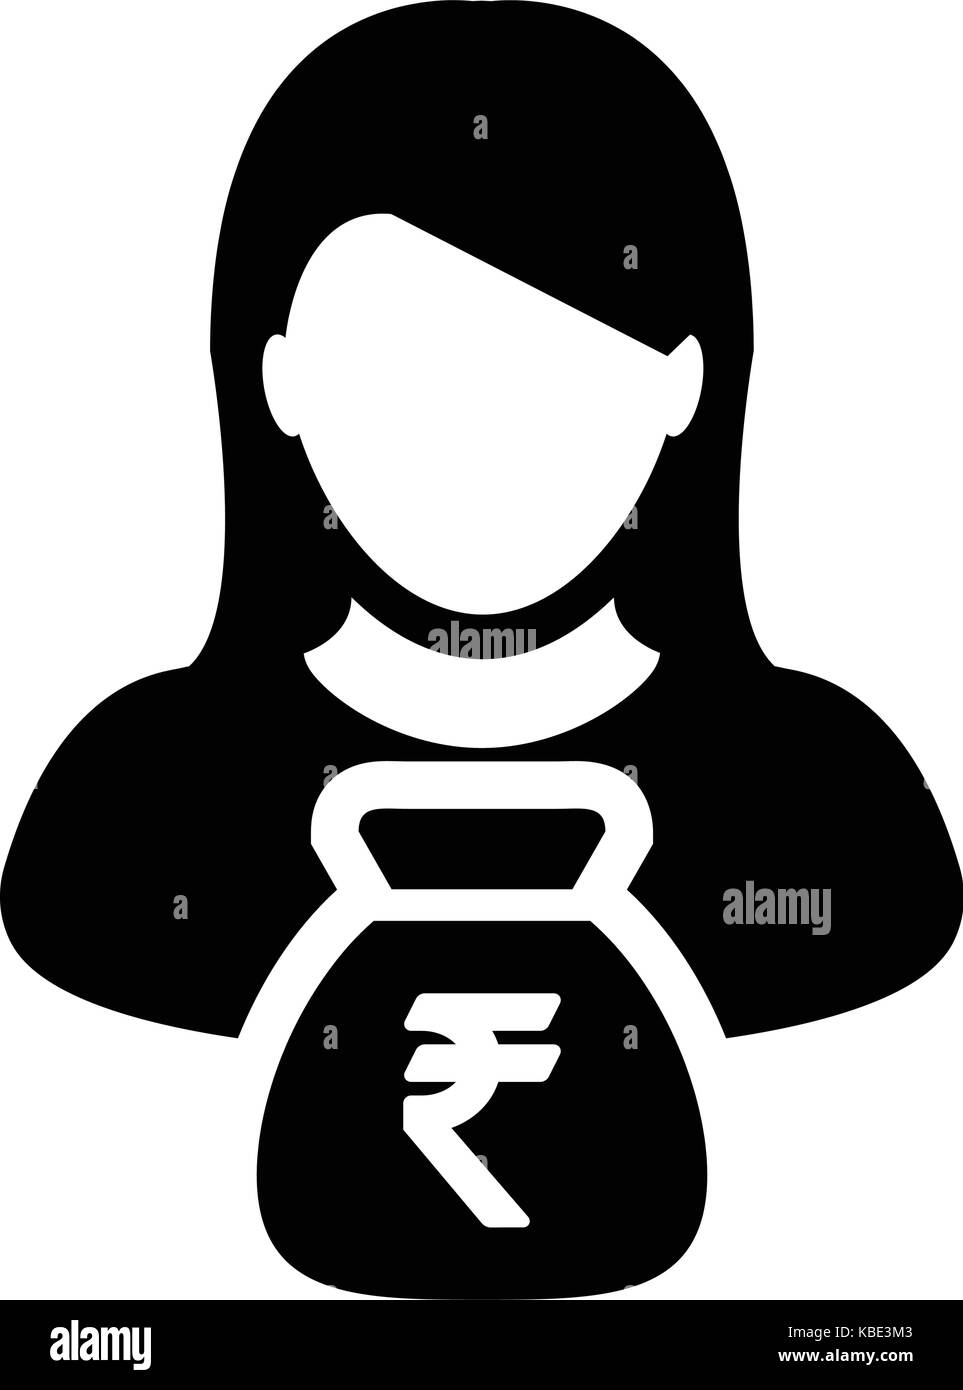 Indian rupee black and white stock photos images alamy indian rupee sign icon vector person female avatar symbol with money bag for business finance and biocorpaavc Choice Image